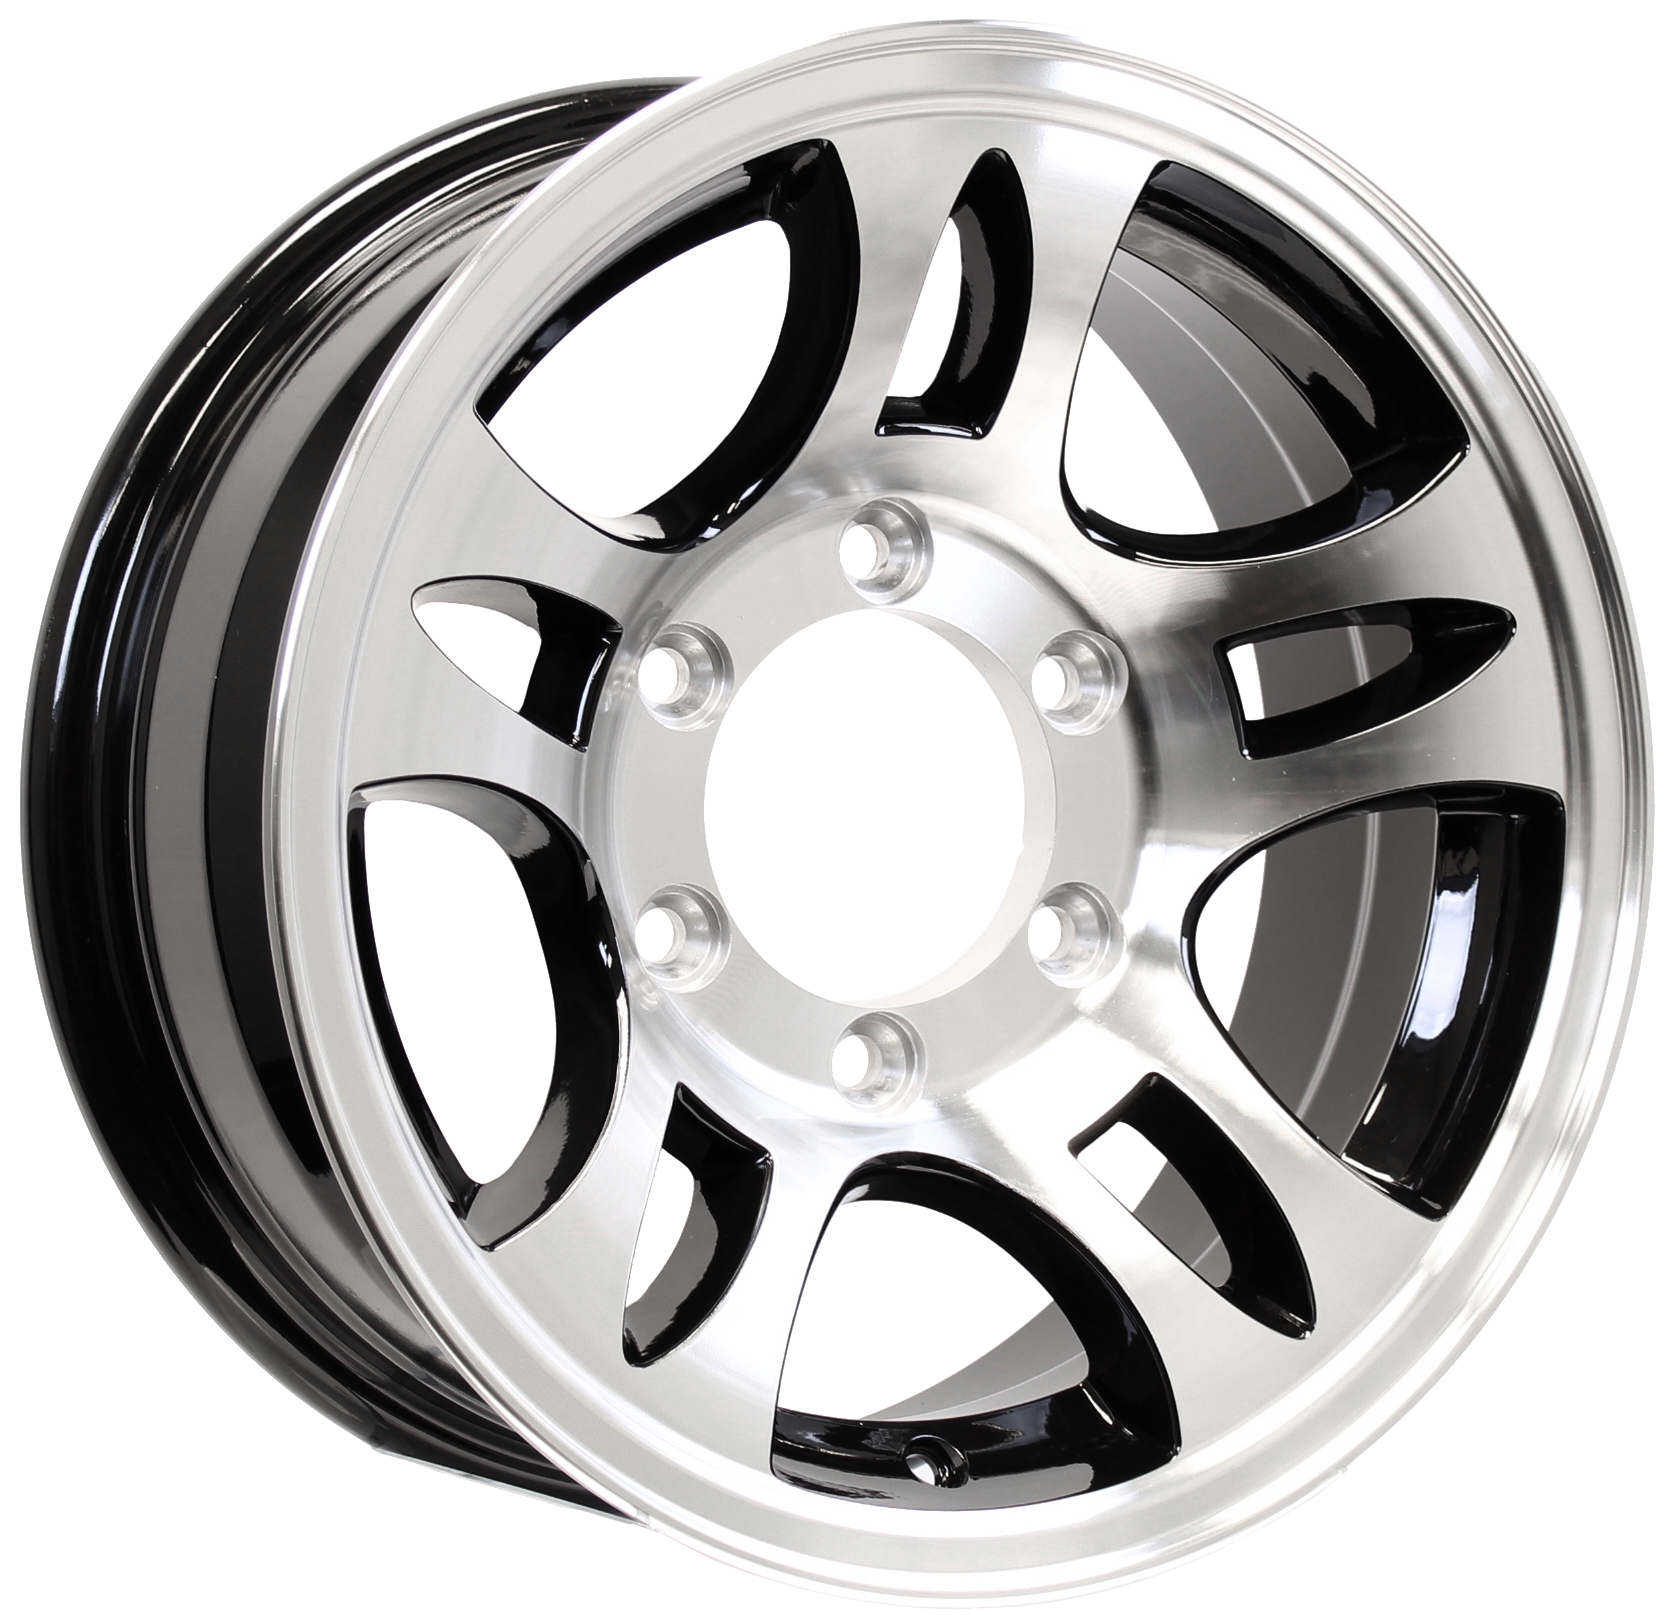 "T03 15"" 6-Lug Black Aluminum Trailer Wheel Image"